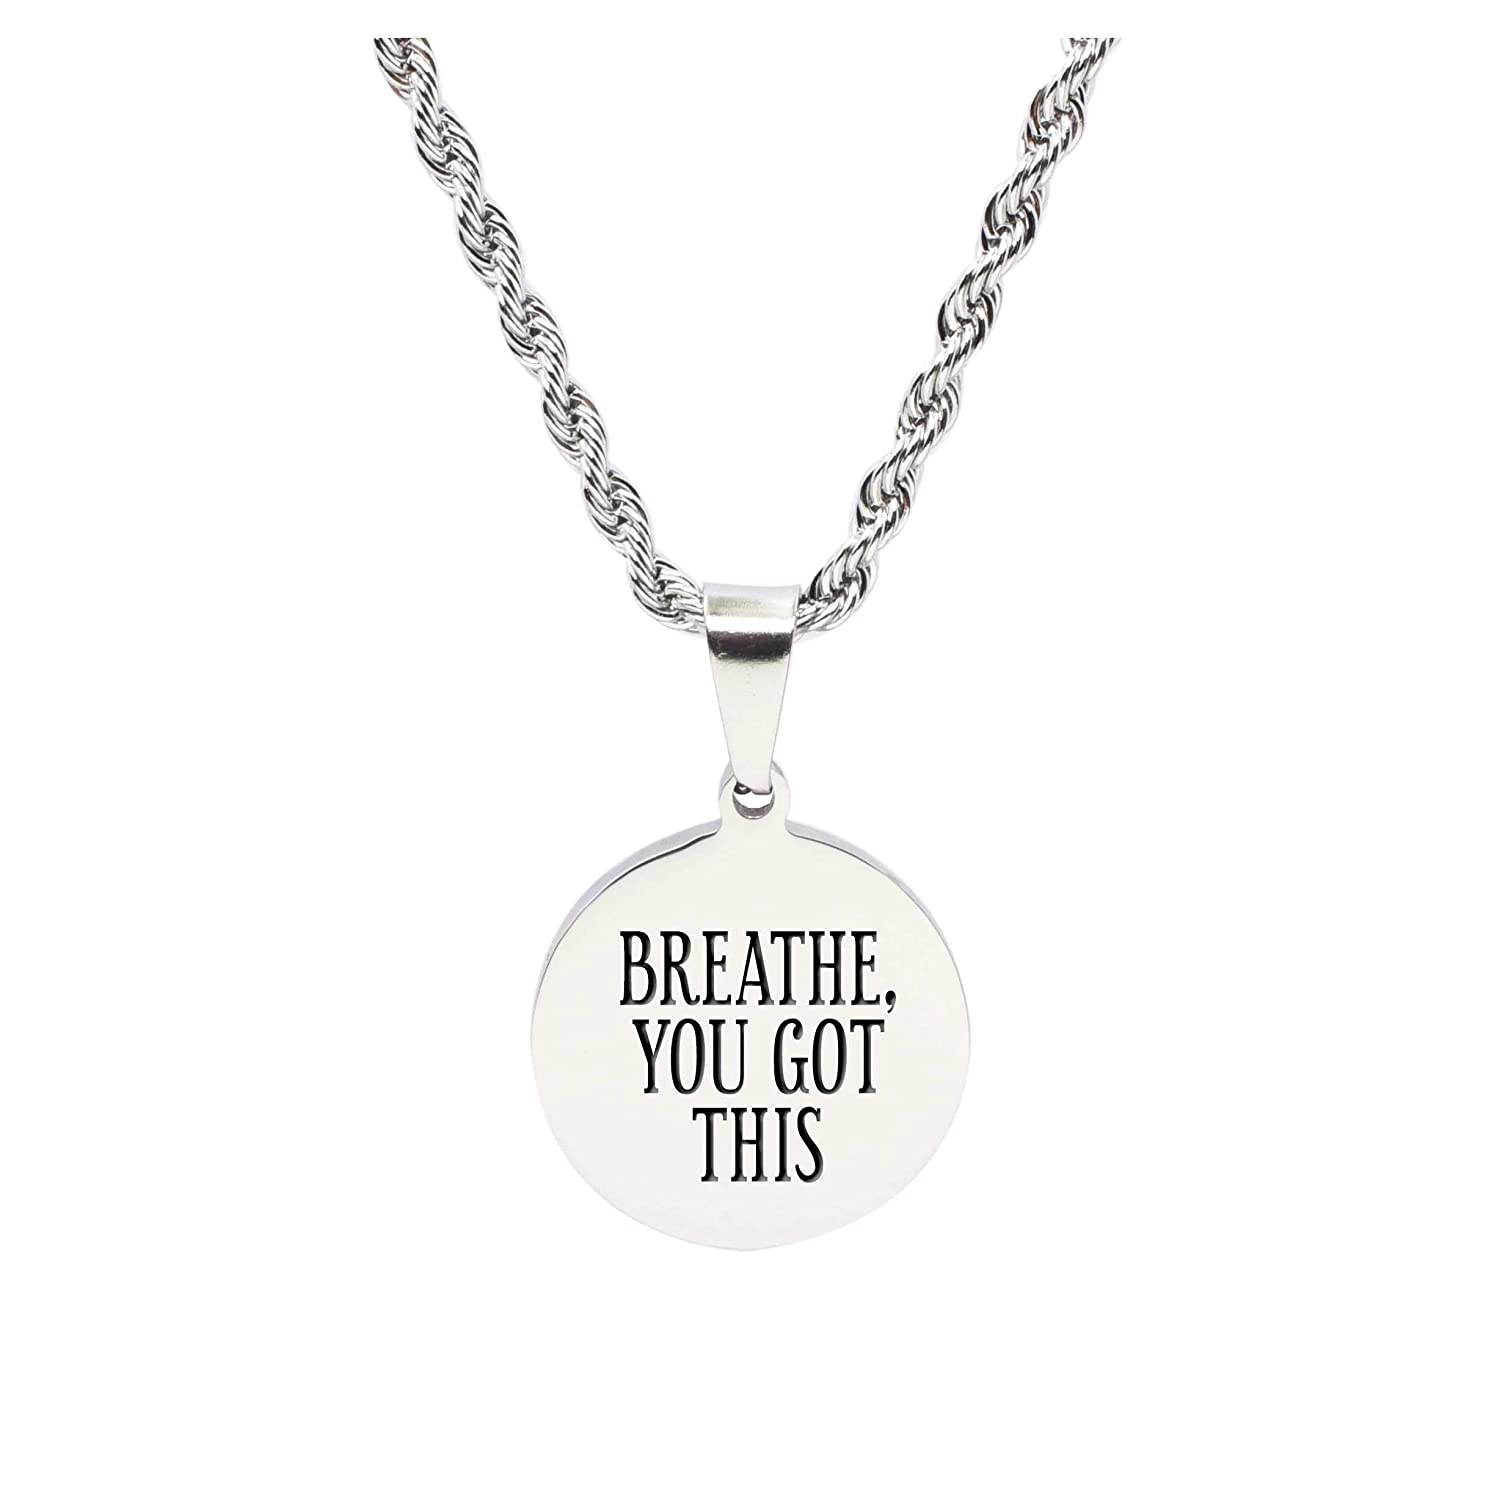 Pink Box Stainless Steel Round Tag Inspirational Necklace